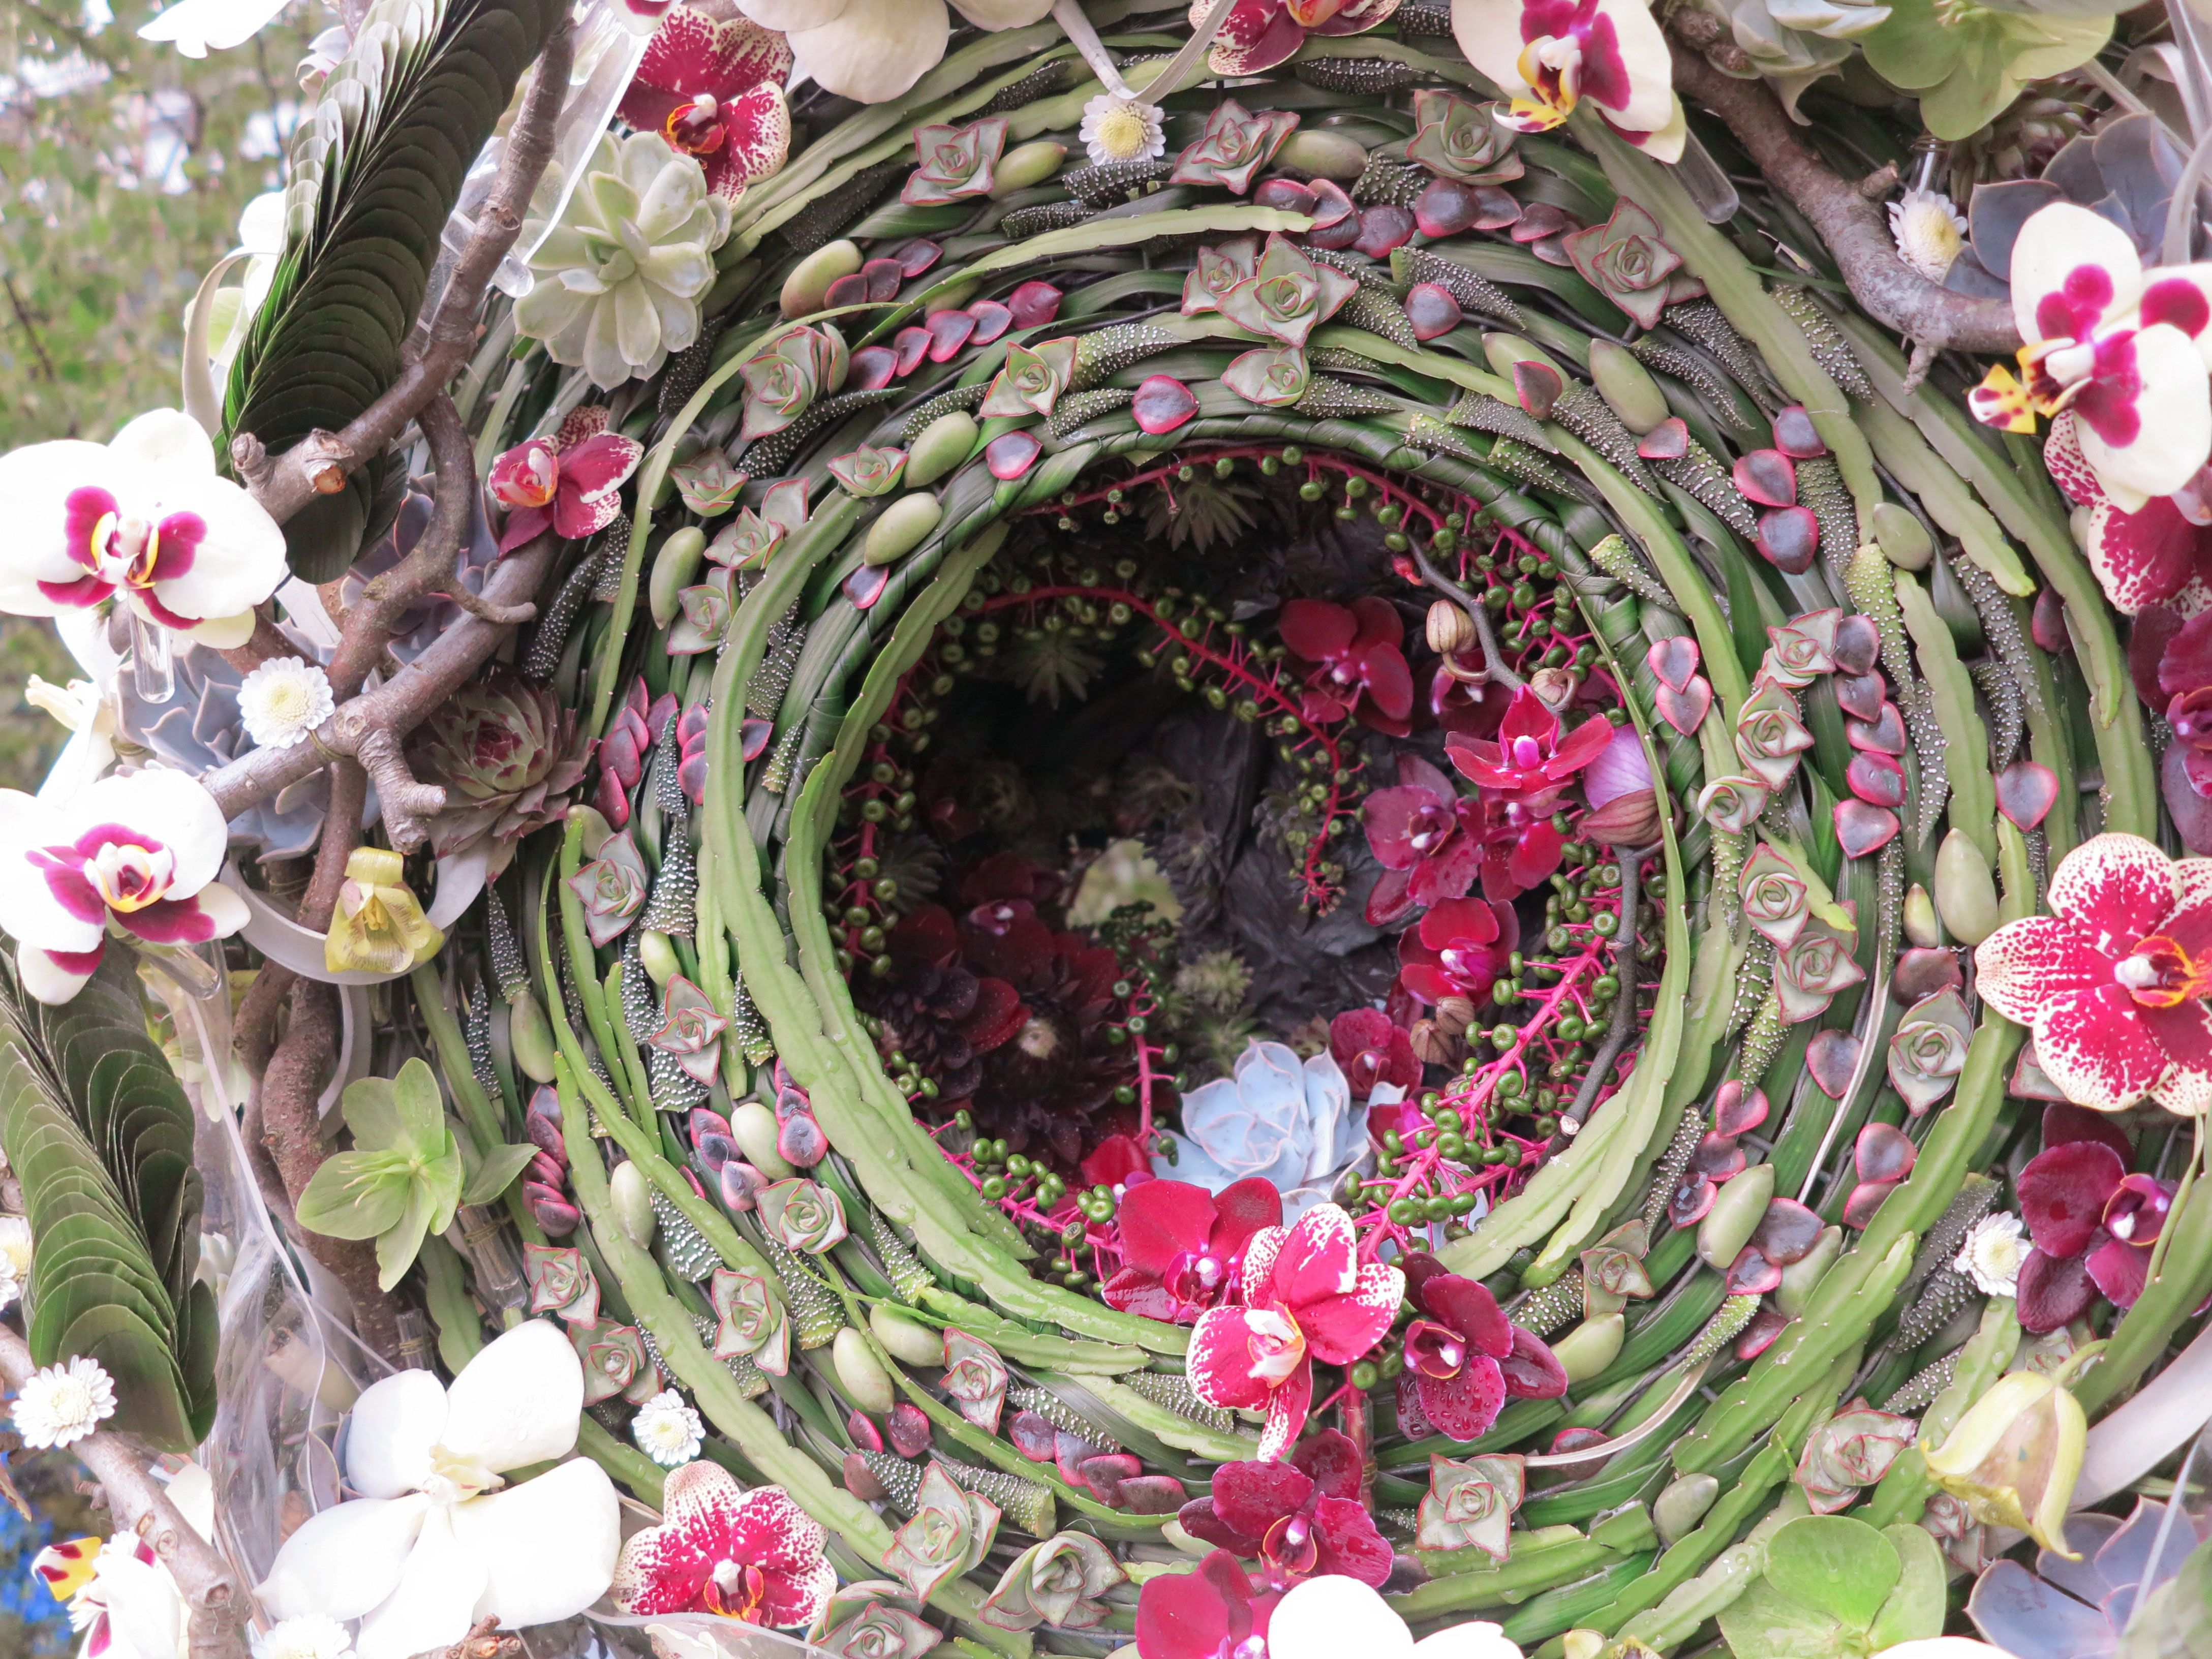 Laura Leong S Floral Vortex Winner Of Rhs Chelsea Florist Of The